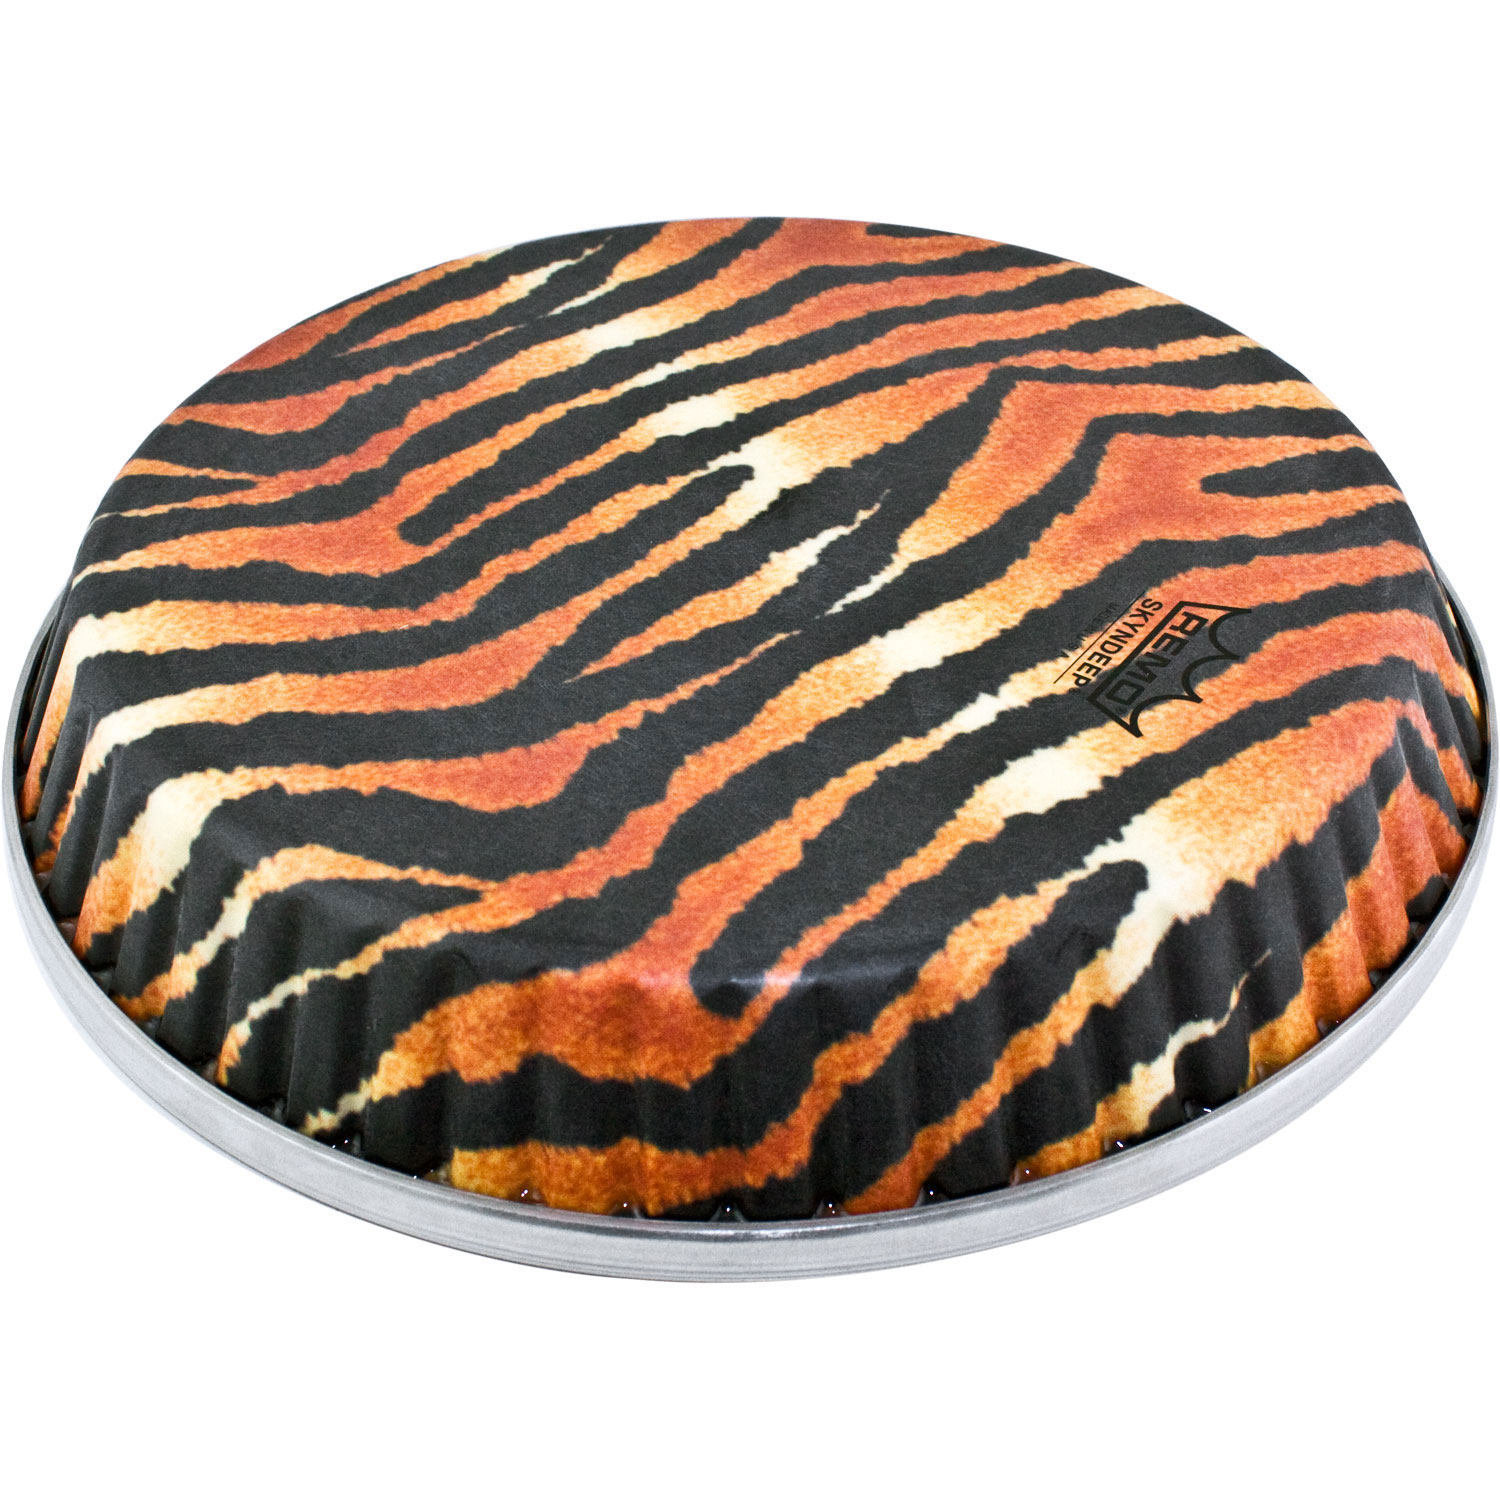 "Remo 12.5"" Symmetry Skyndeep Conga Drum Head (D2 Collar) with Tiger Stripe Graphic"